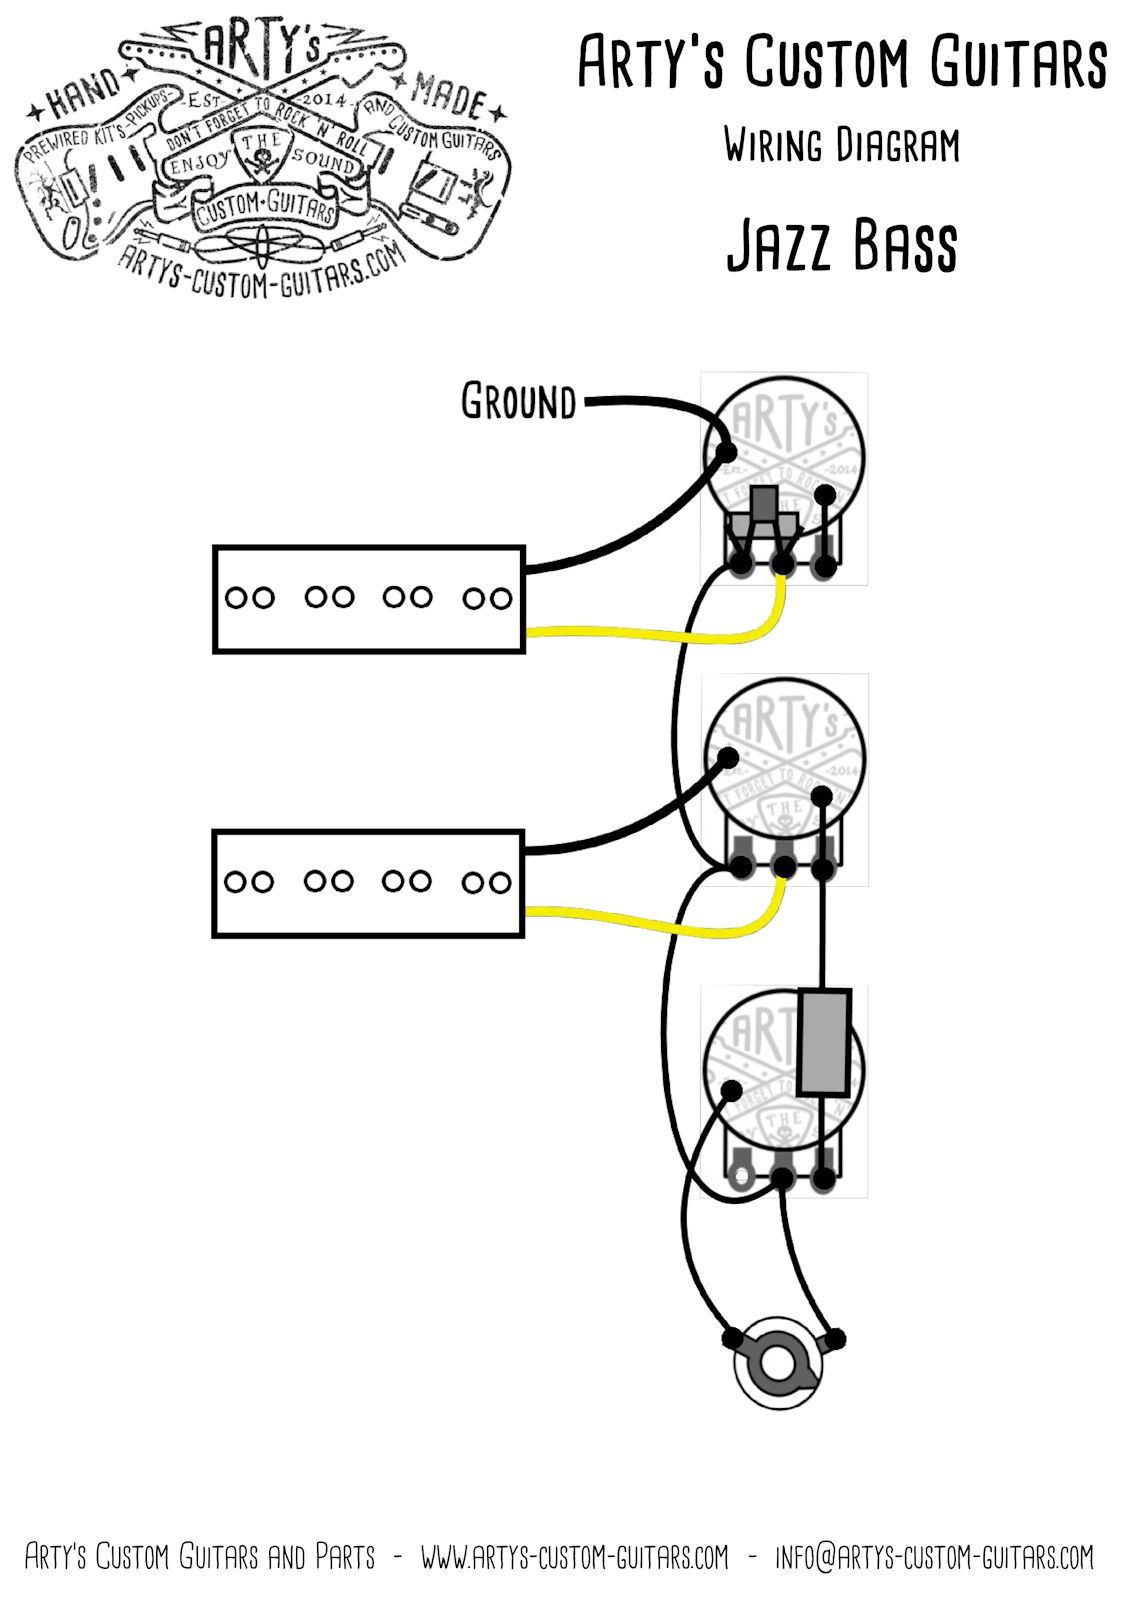 wiring harness jazz bass balance j